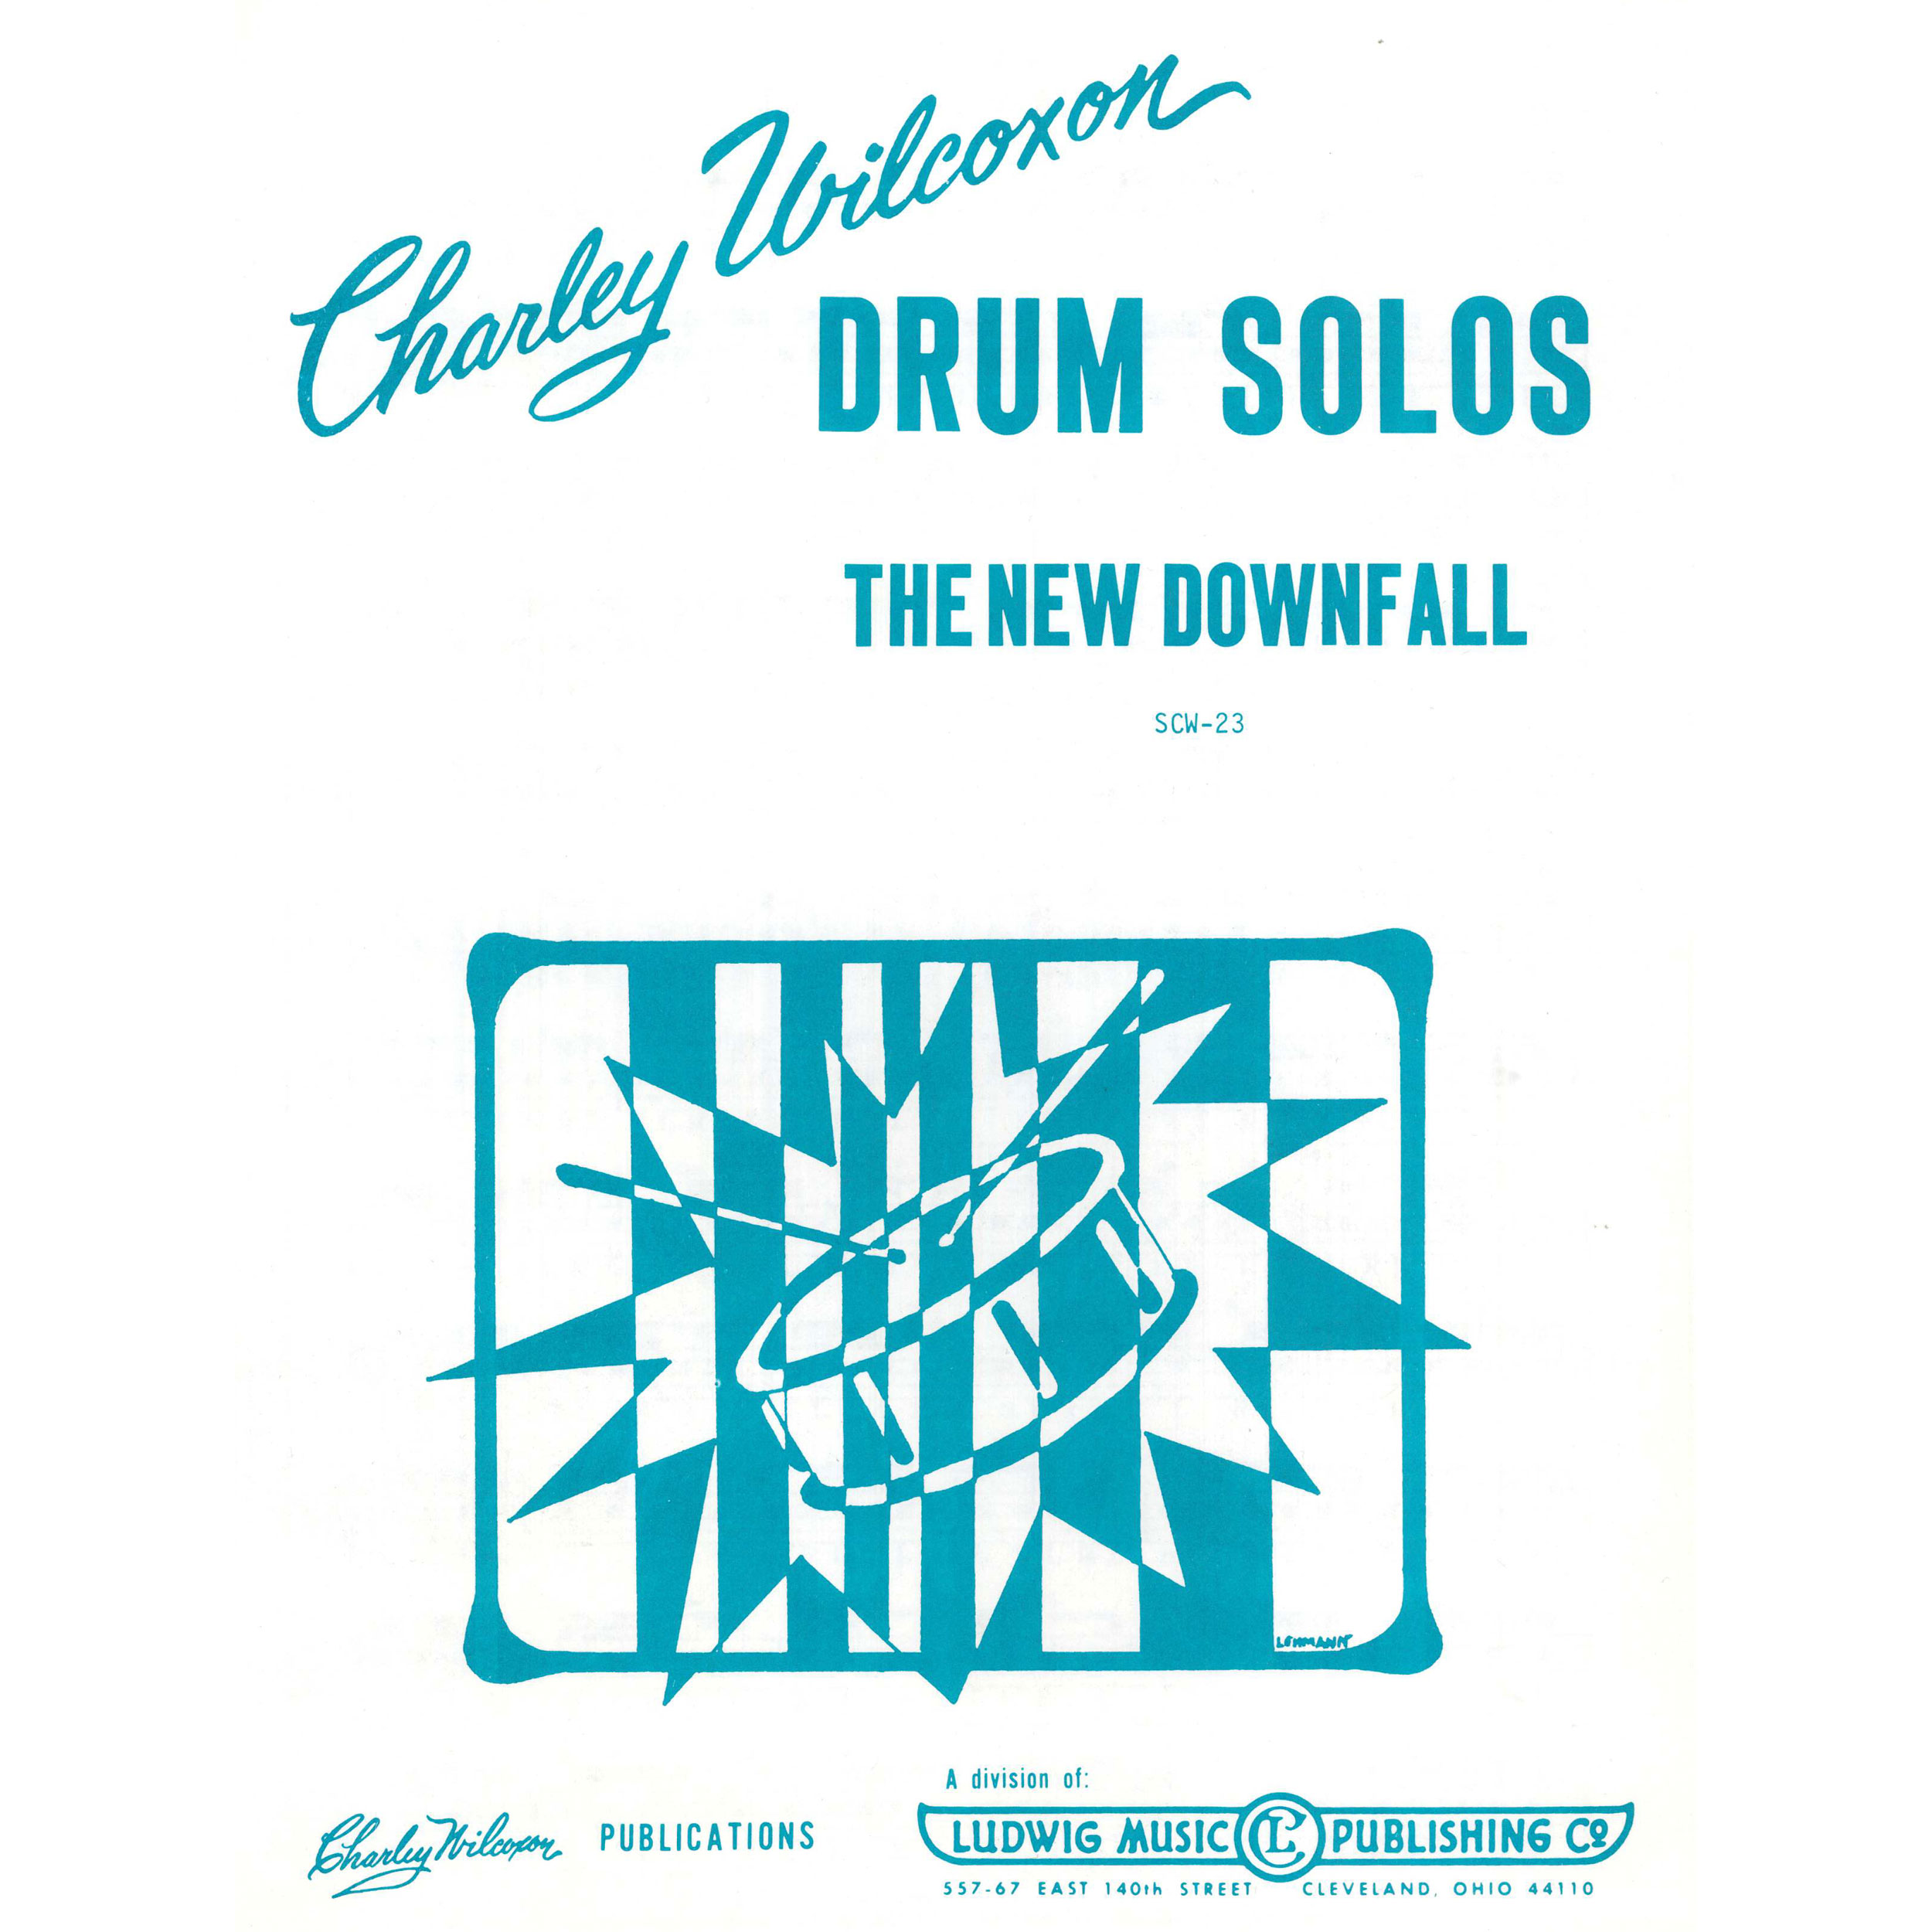 The New Downfall by Charley Wilcoxon